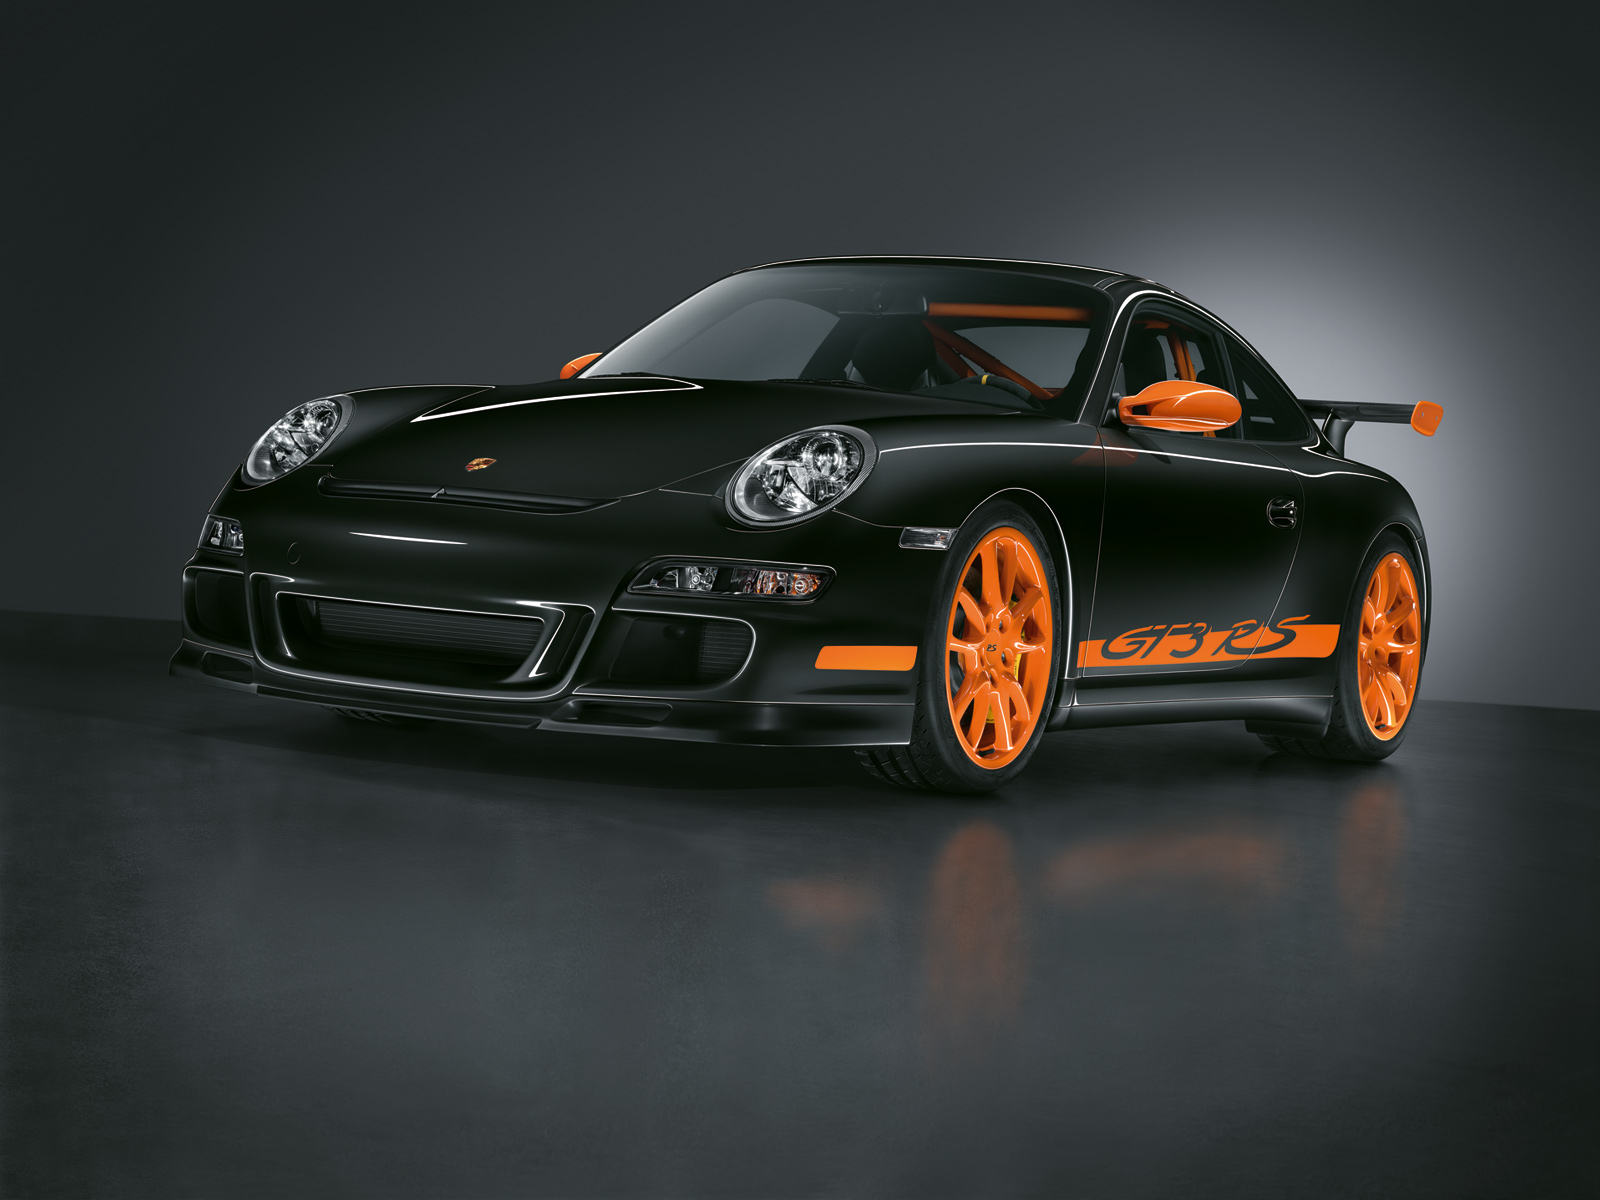 Porsche Carrera GT3 RS photos Wallpaper Backgrounds